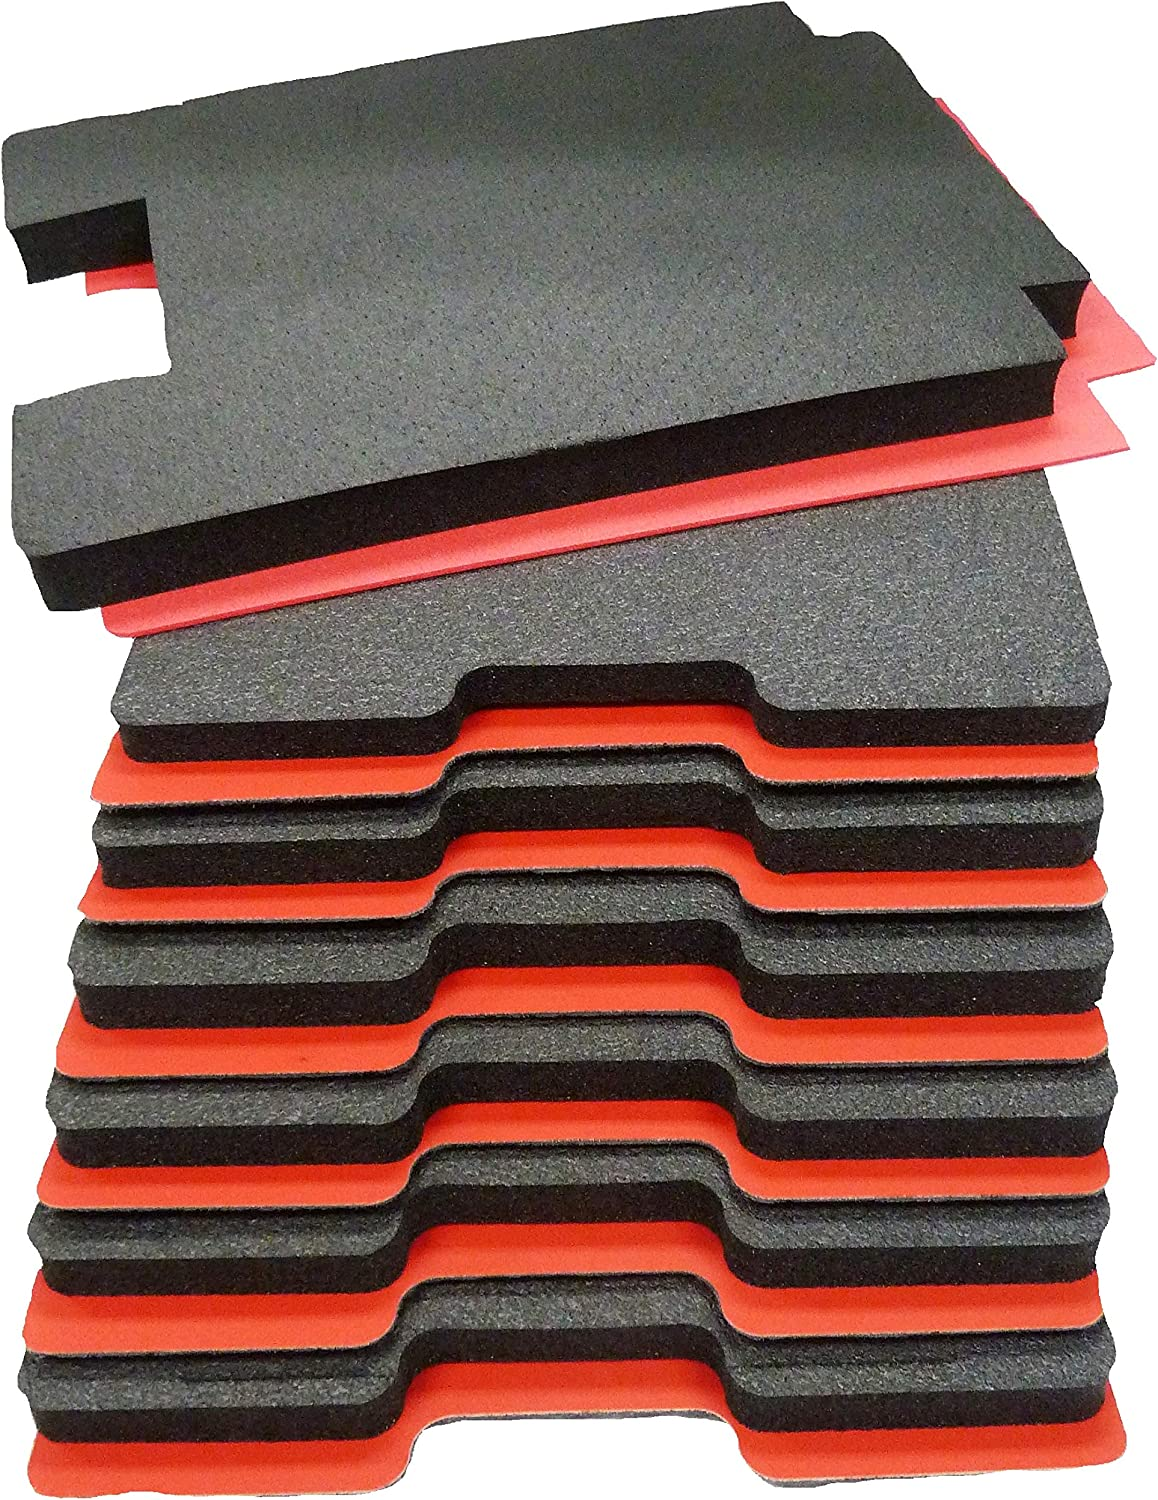 Custom Tool Control Foam Inserts /& ABS Plastic for Pelican 1620 Turn Your 1620 into a Custom Tool case.